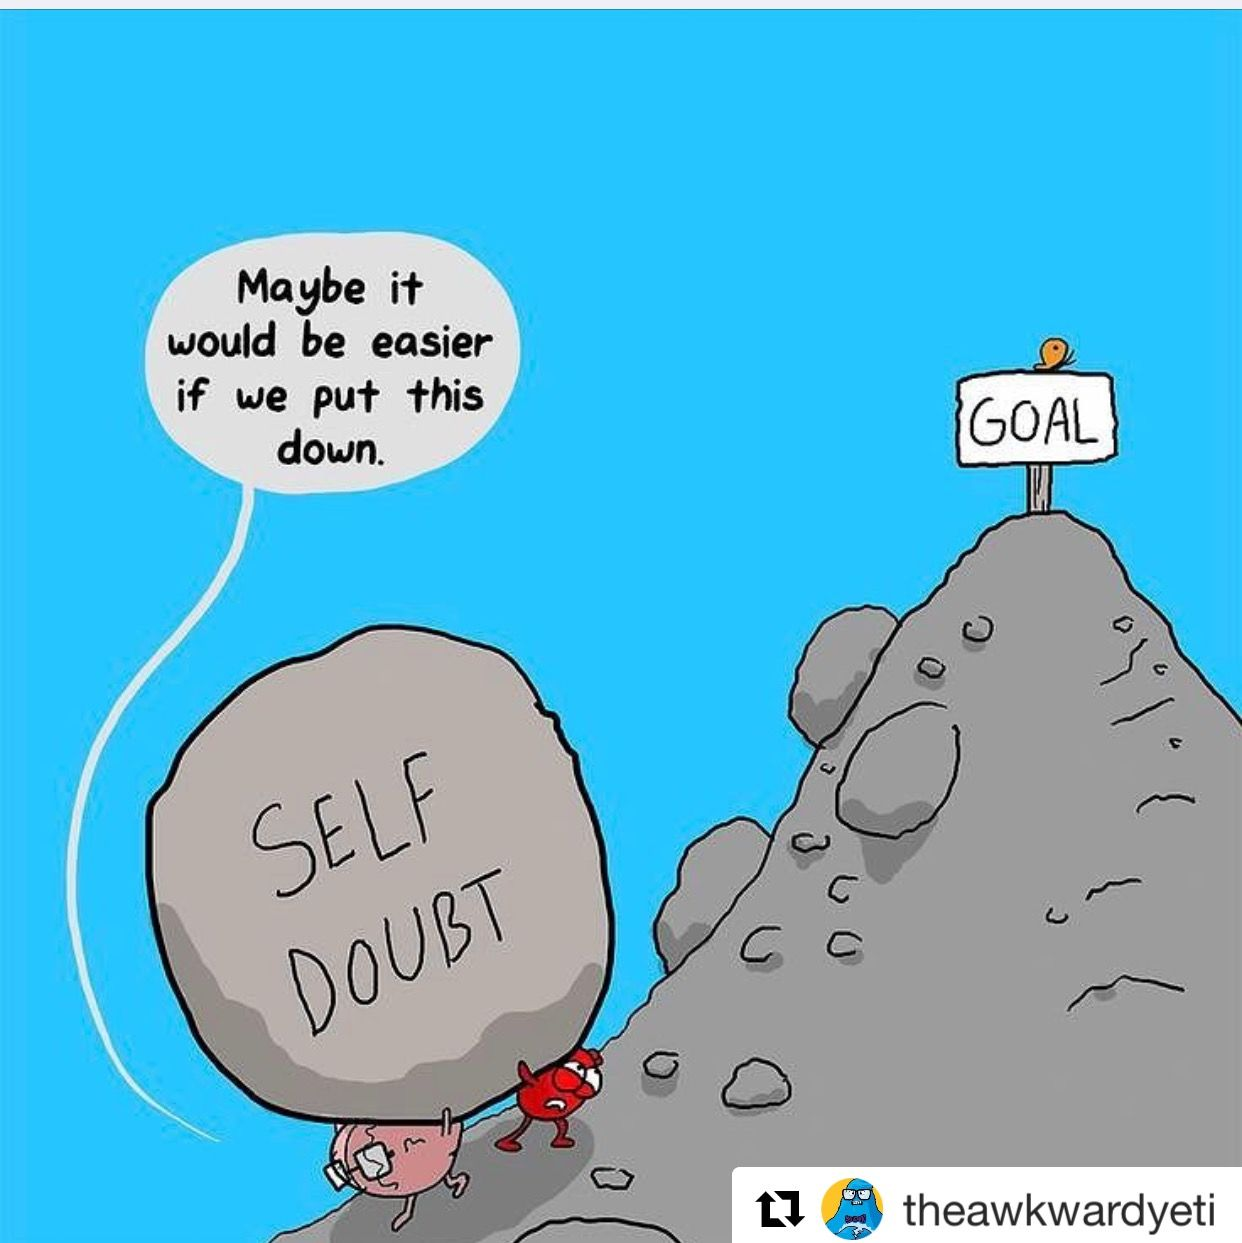 Let Go Of That Self Doubt And Achieve Your Goals Repost From Theawkwardyeti Let This Comic Be A Litt Awkward Yeti Inspirational Quotes Heart And Brain Comic